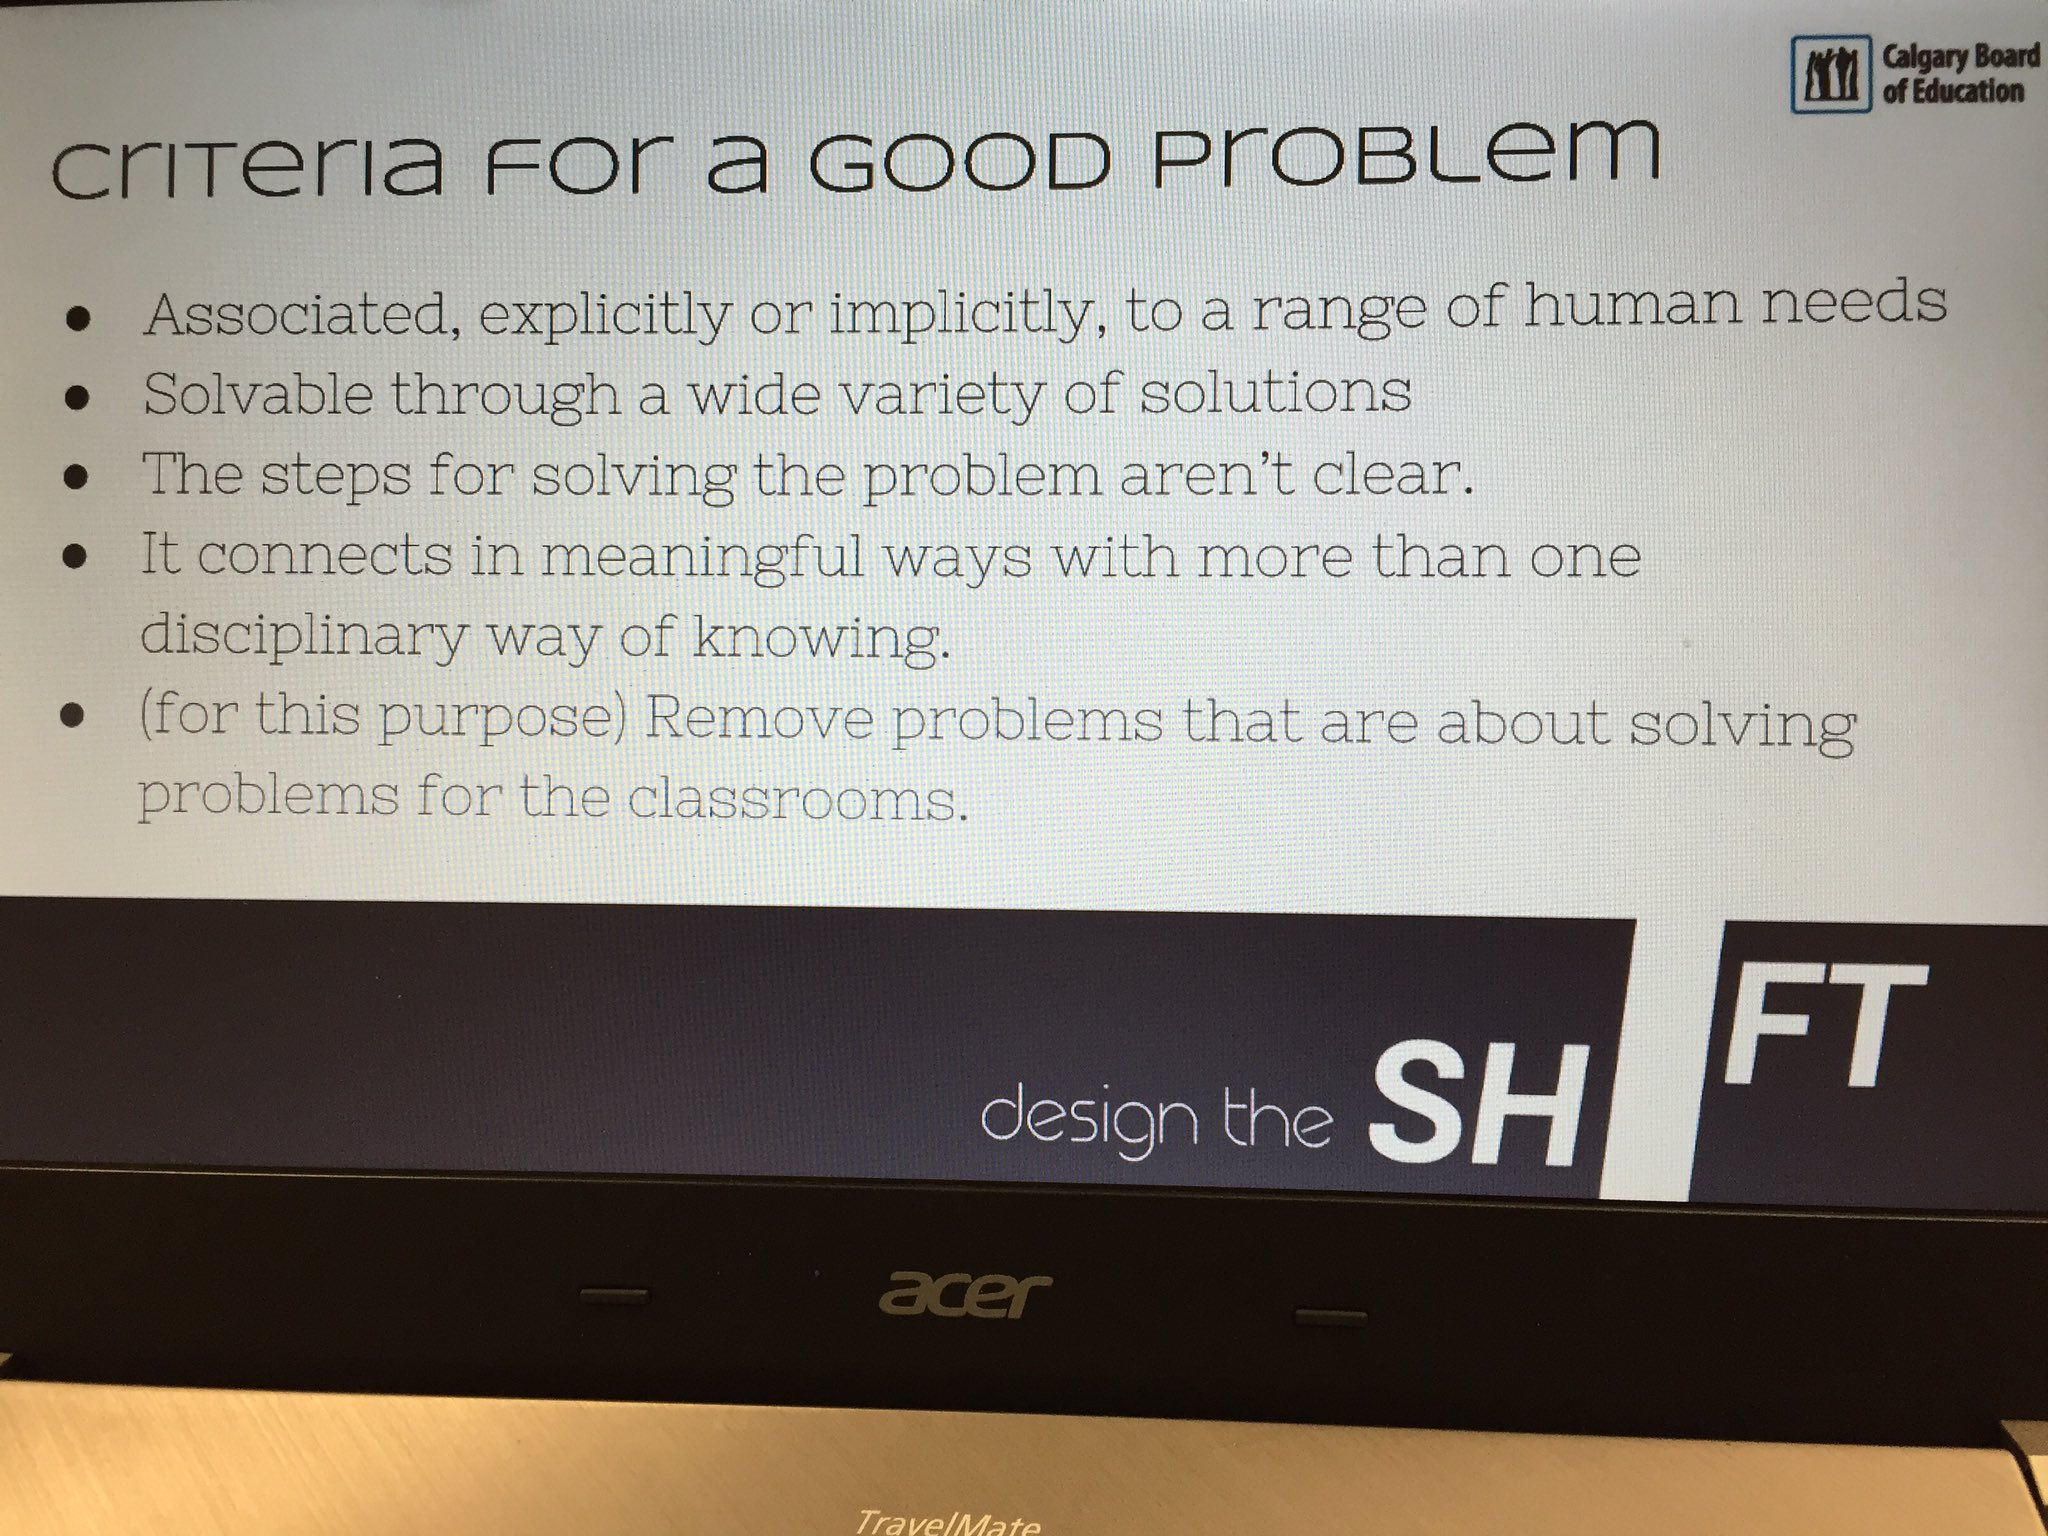 Here's our criteria for a good problem.  #cbeshift https://t.co/IQ5y4AH6bz